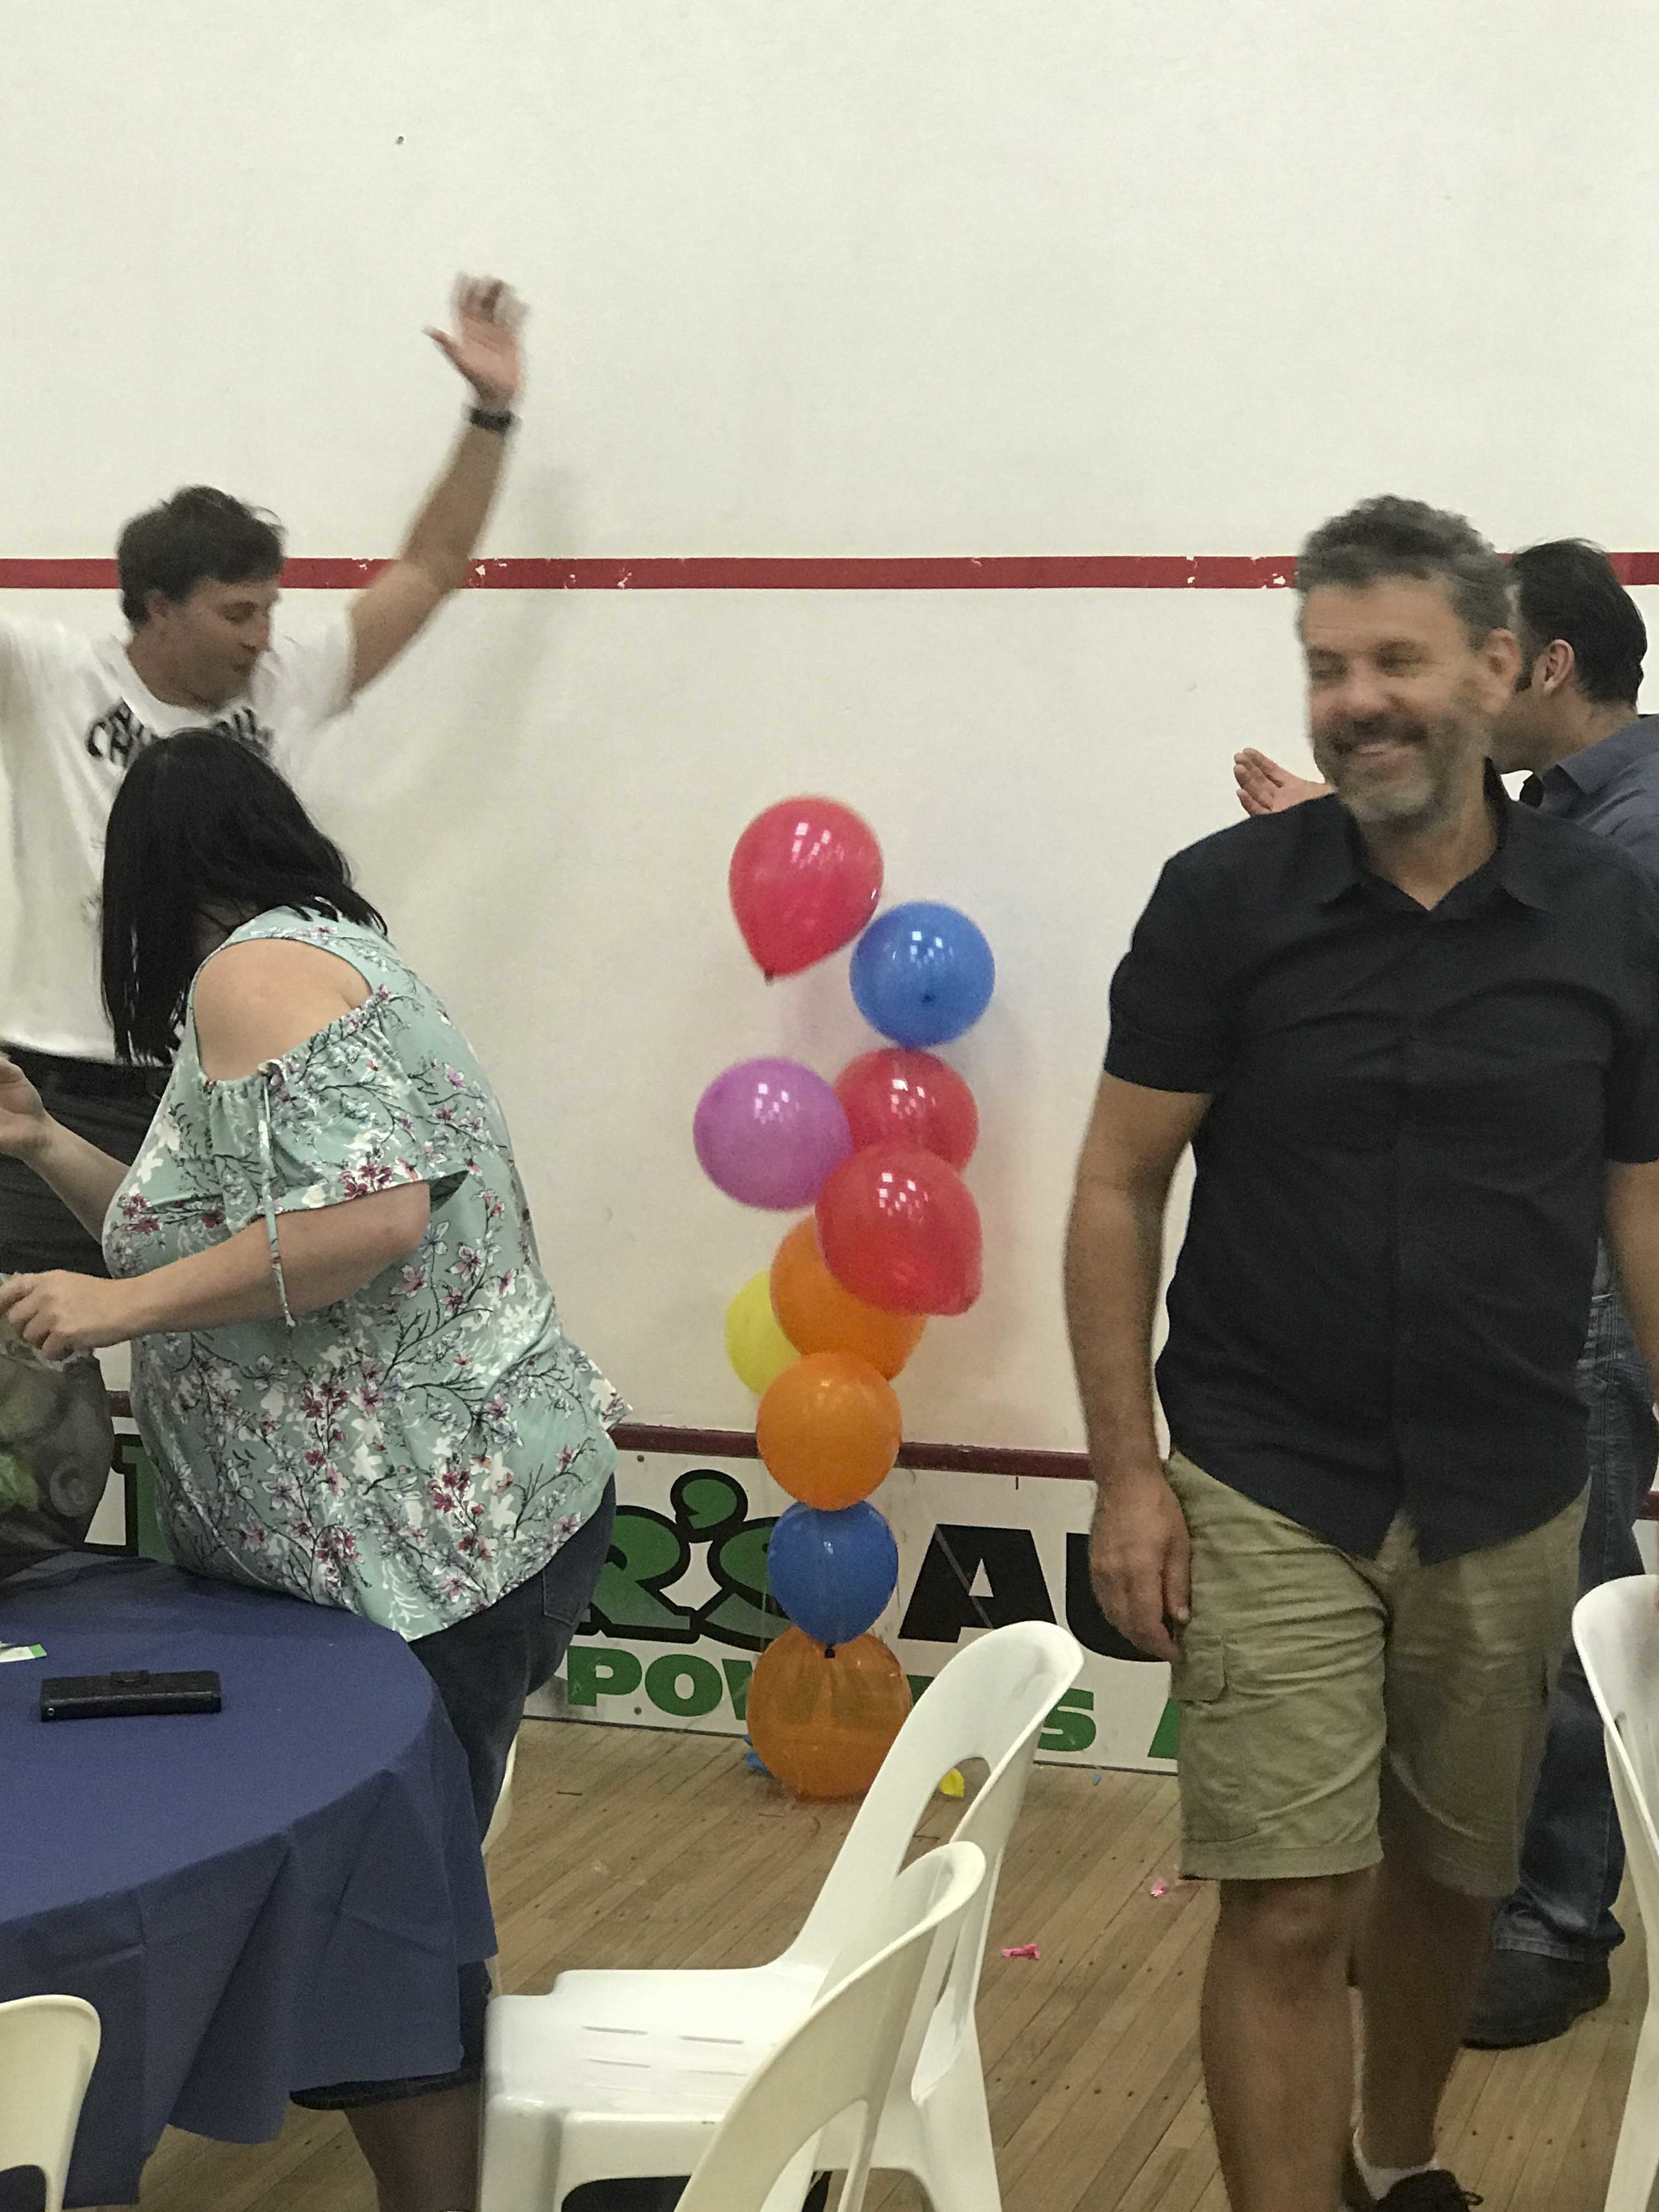 Bendigo Squash Club Trivia Night - RUSS_42.jpg